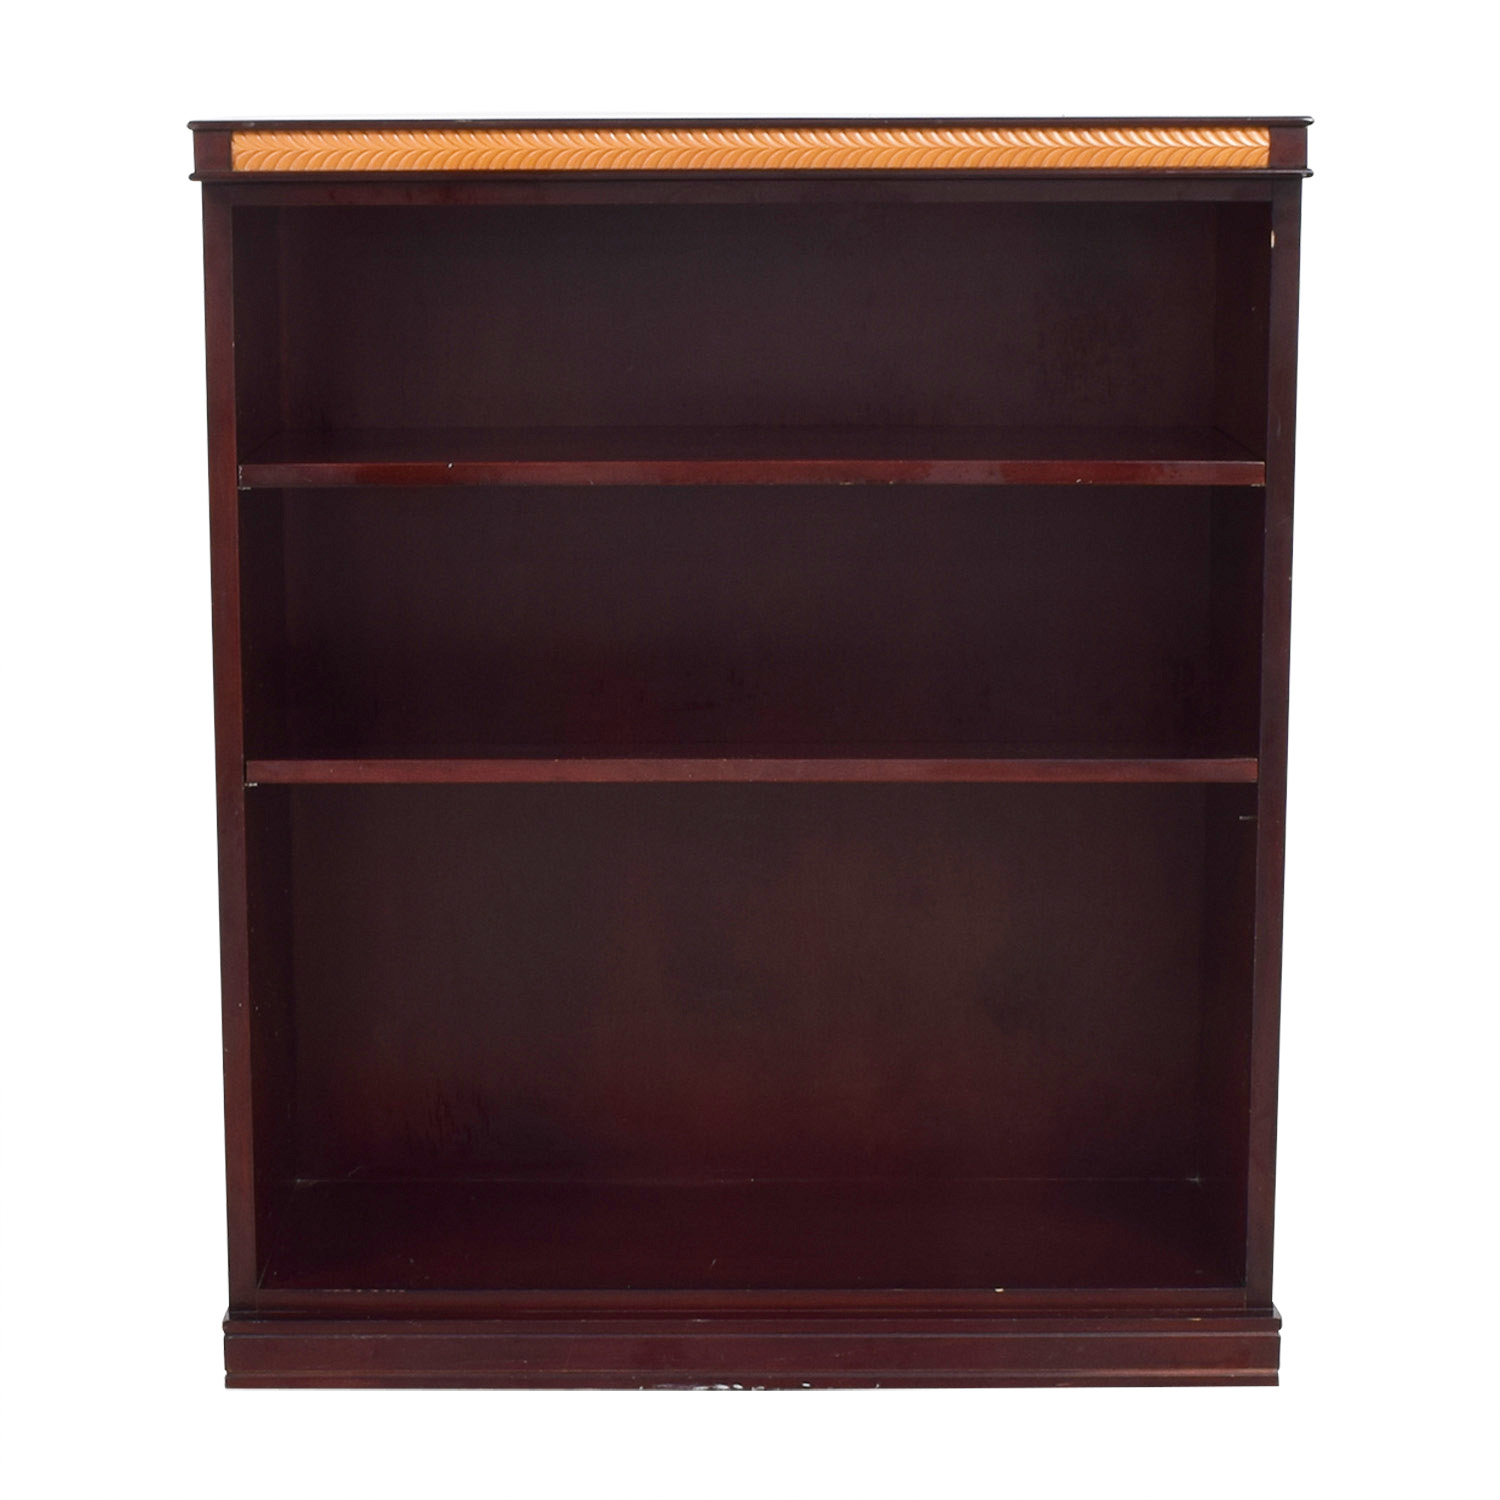 Classic Mahogany Bookshelf Red Cherry